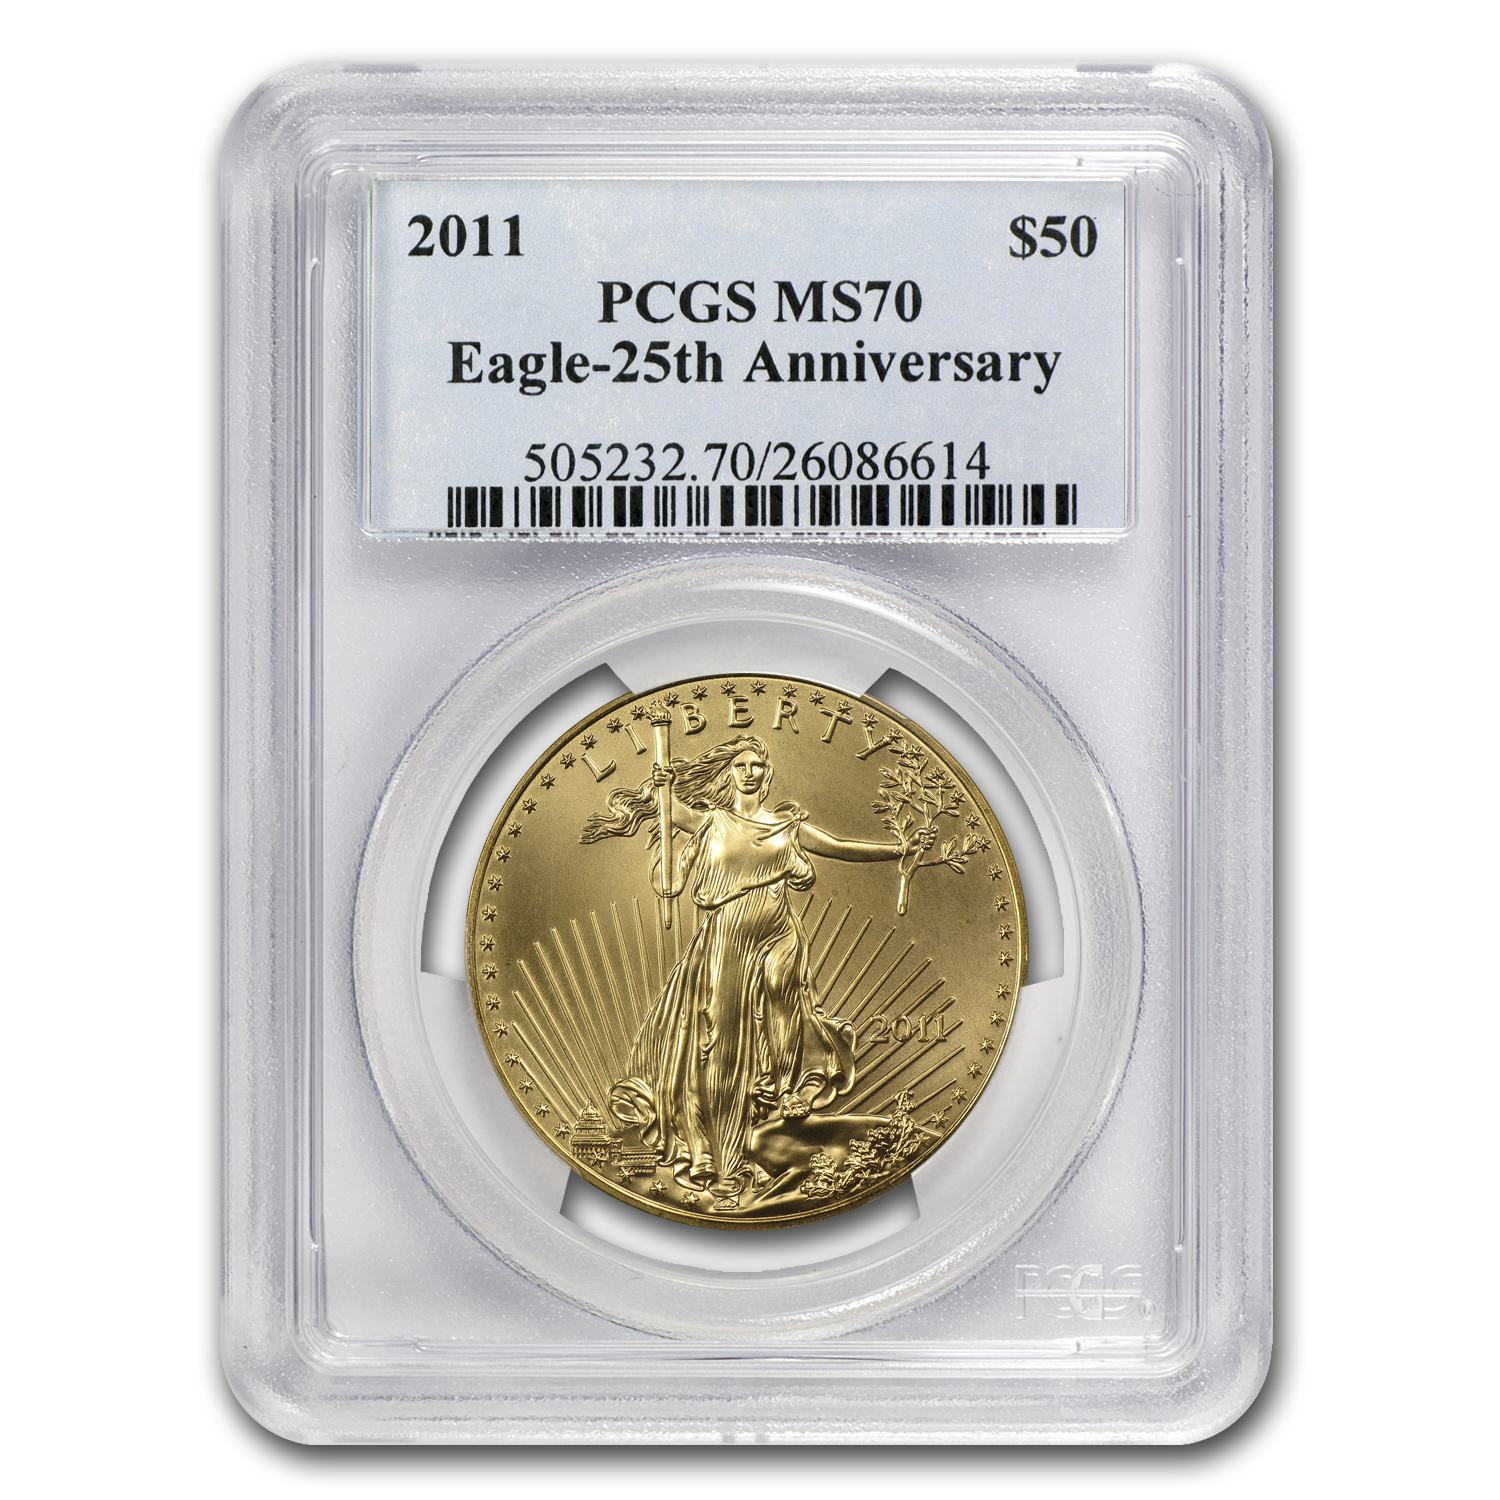 2011 1 oz Gold American Eagle MS-70 PCGS